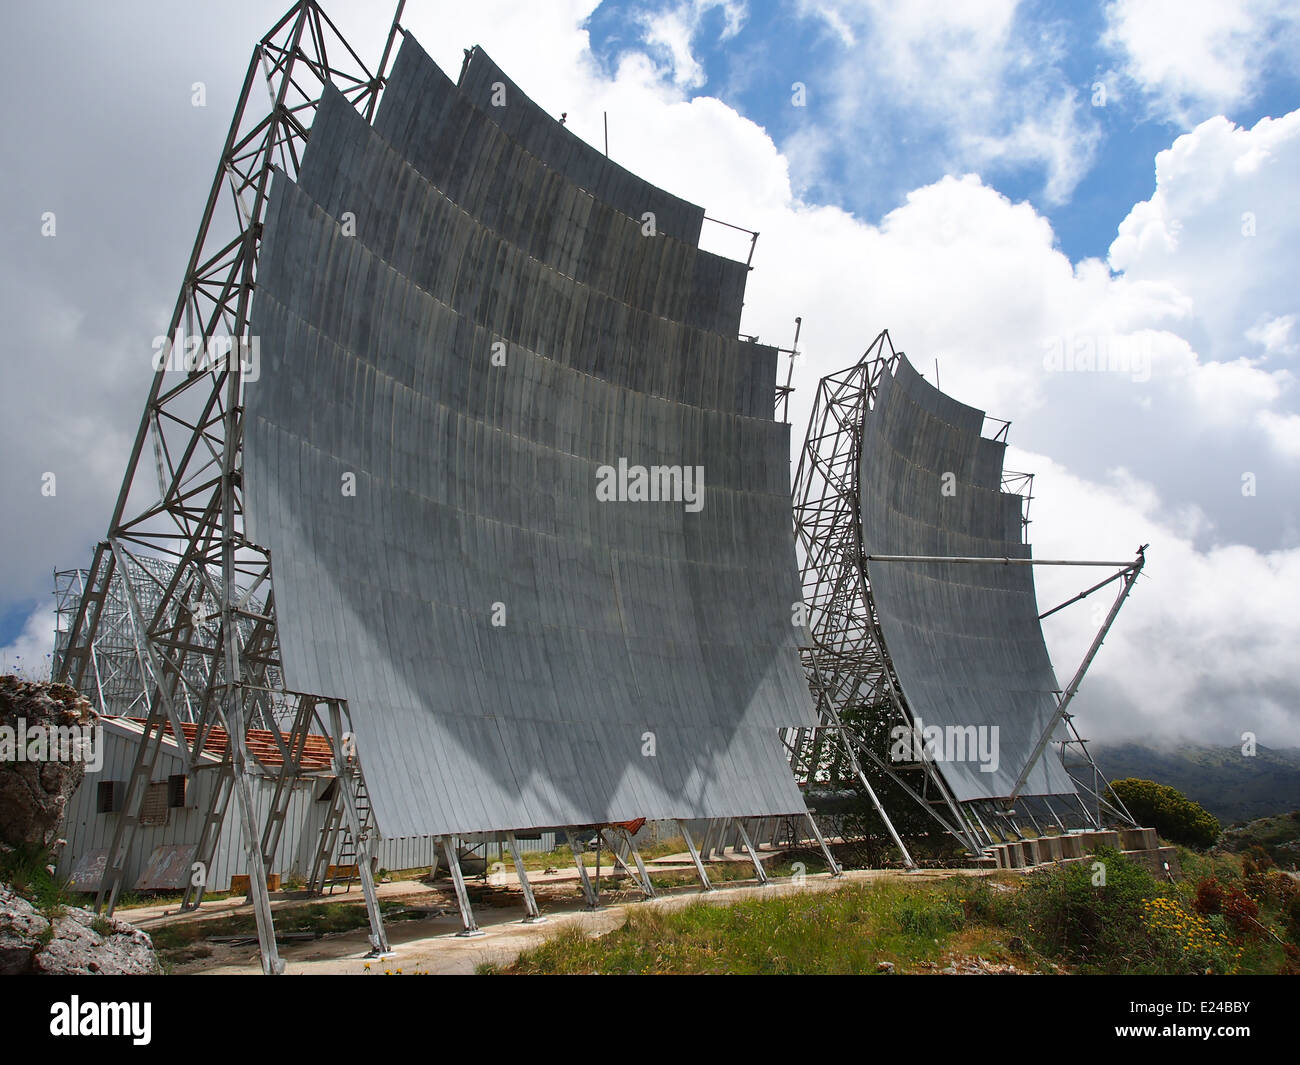 Radio Relay Station Former USAF microwave relay station ACE-High system at Lefkada, Greece, photo 6 - Stock Image